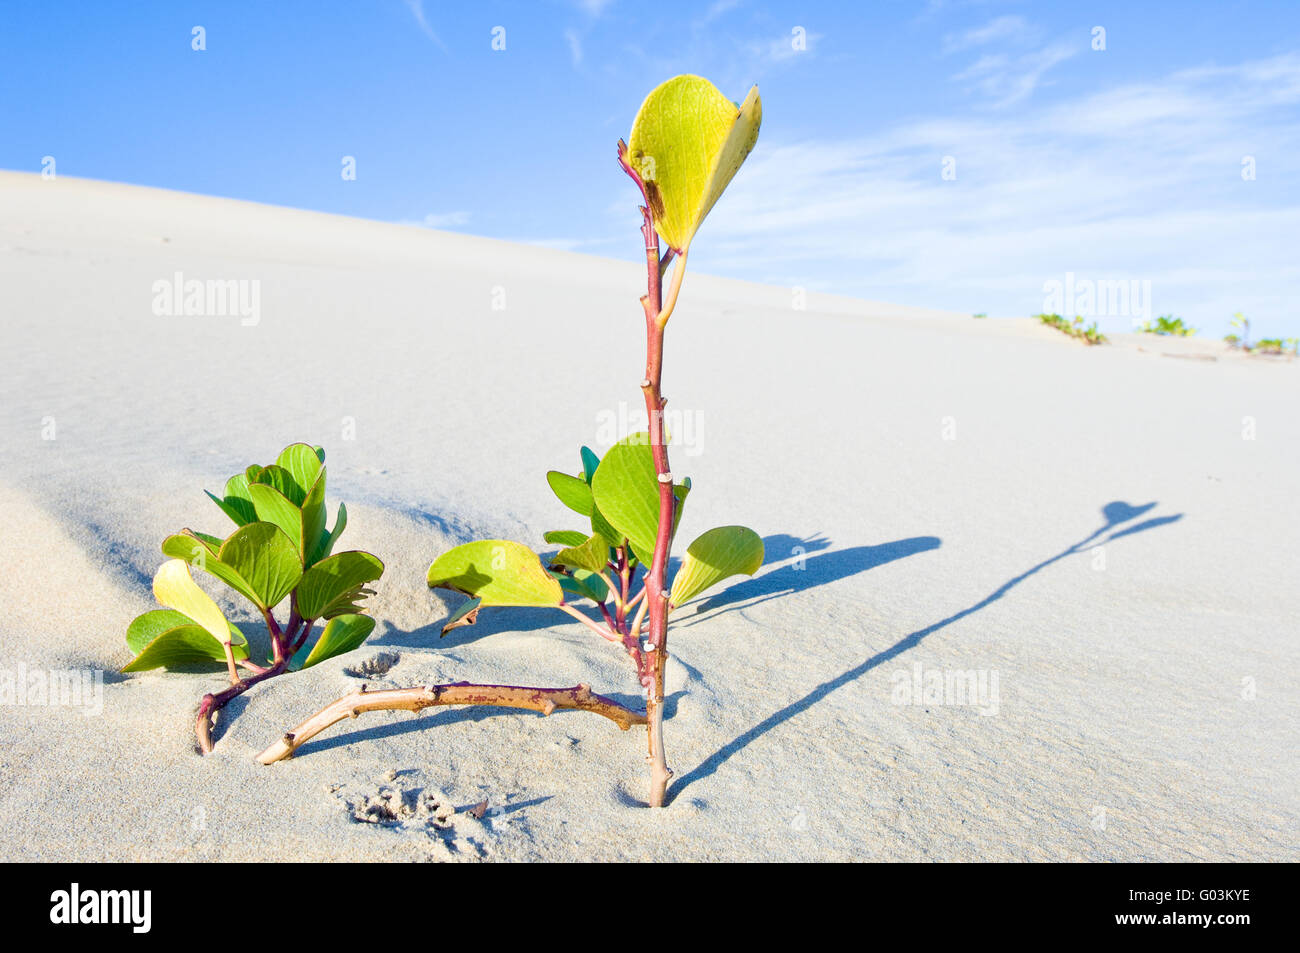 Ipomoea pes-caprae, also known as bayhops, beach morning glory or goat's foot, is a common pantropical creeping - Stock Image